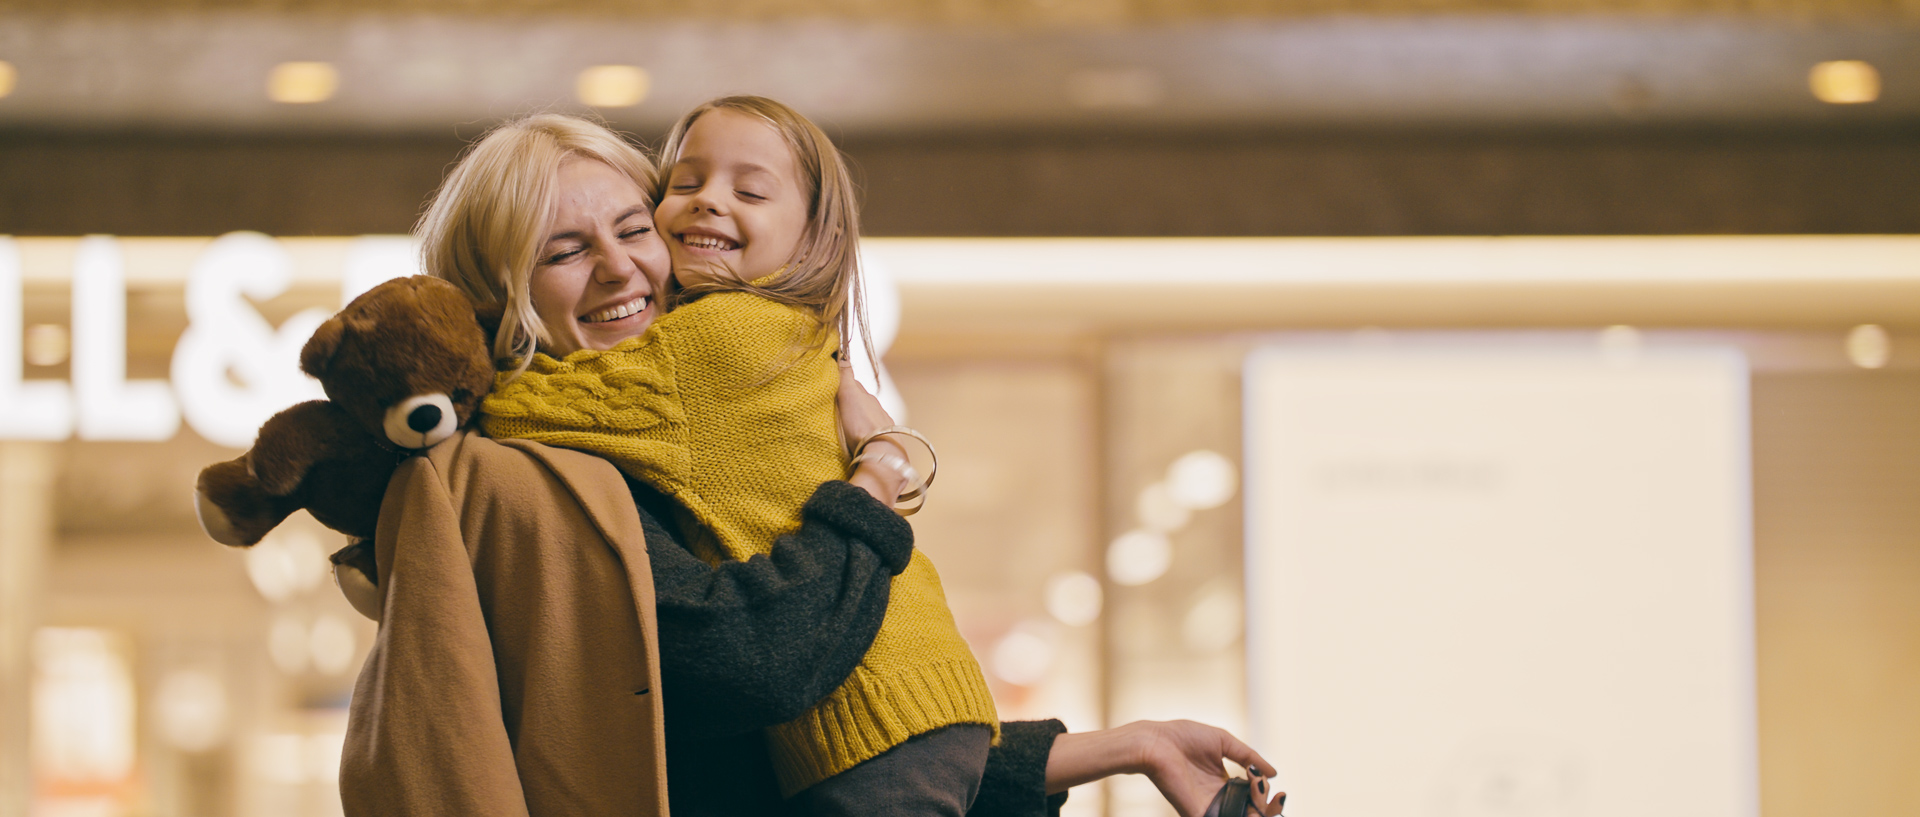 mother and daughter with teddy bear at iulius town timisoara on christmas popotam productions video agency after color grading